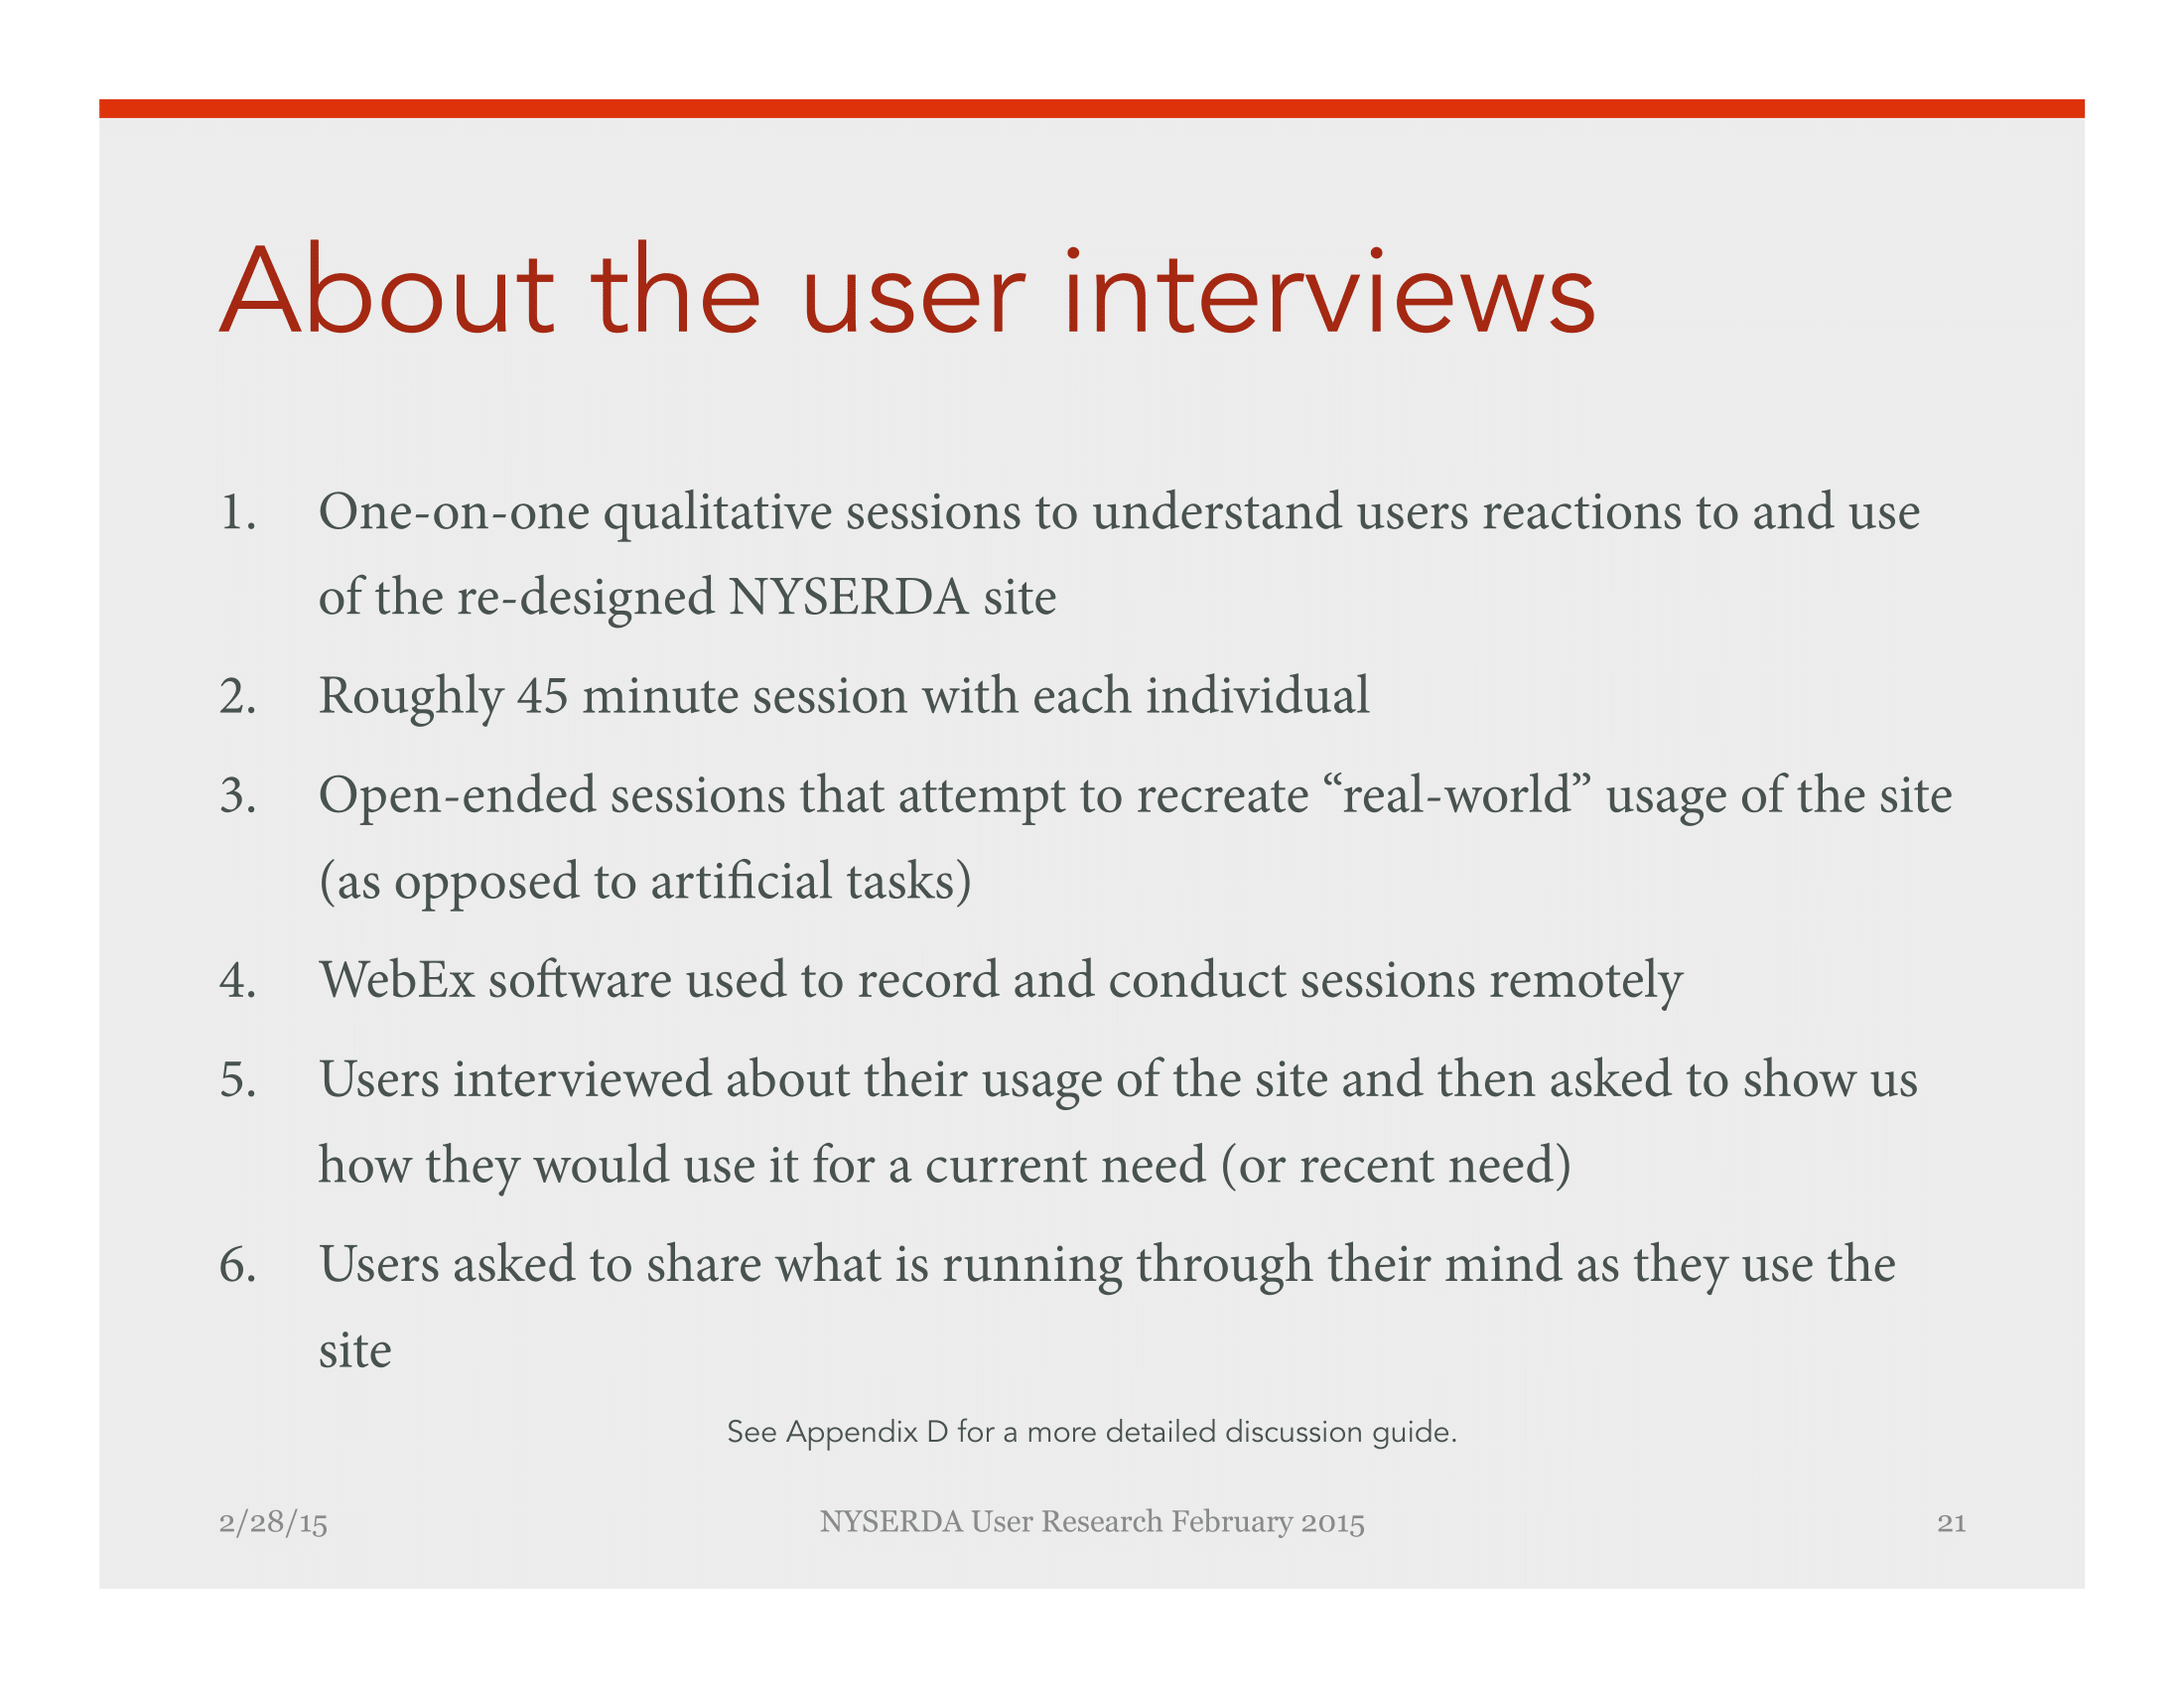 NYSERDA_Usability_Findings_Feb2015_PRESENTED 21-1.png